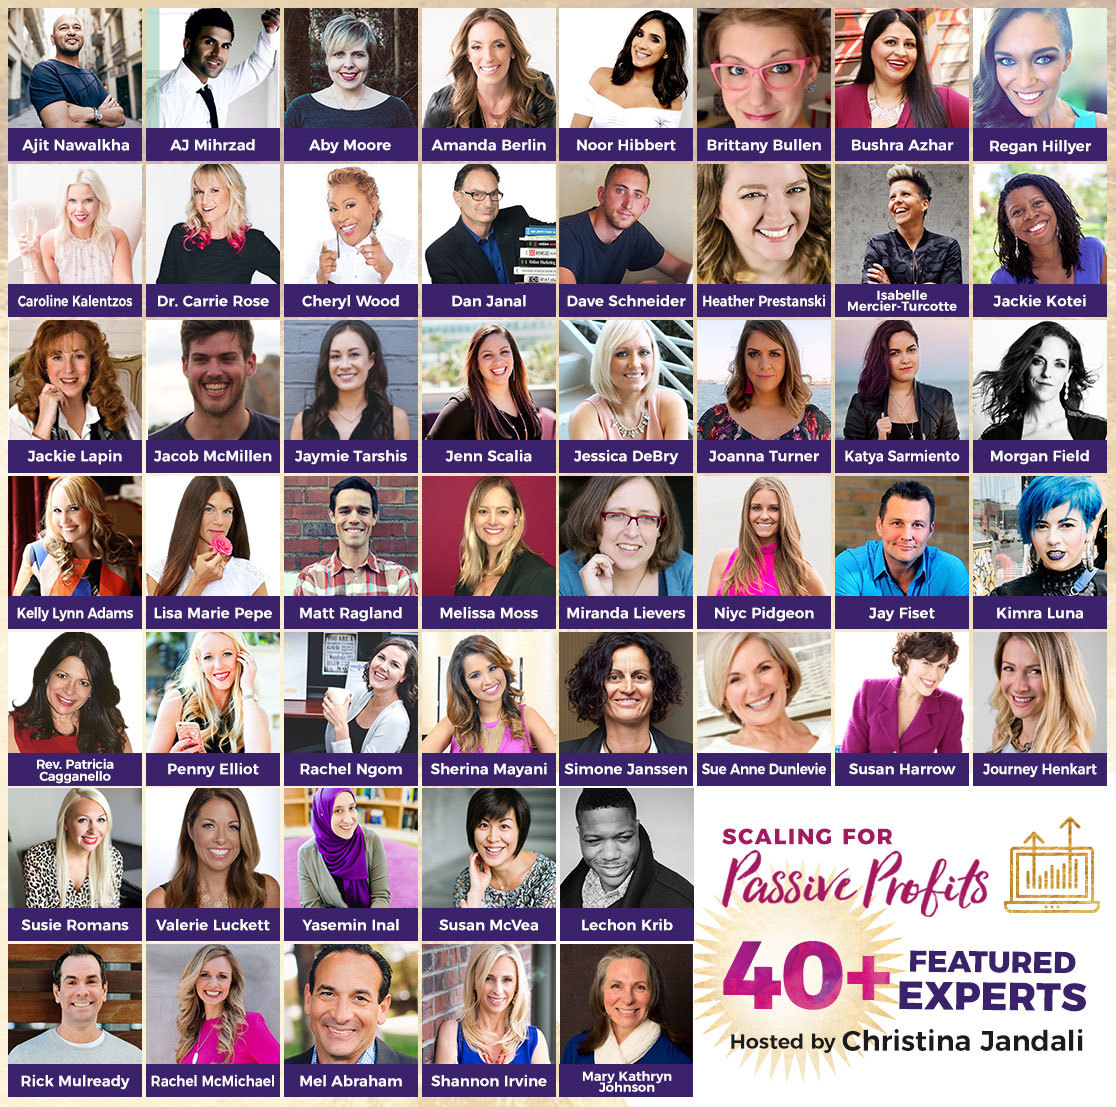 40+ featured industry influencers